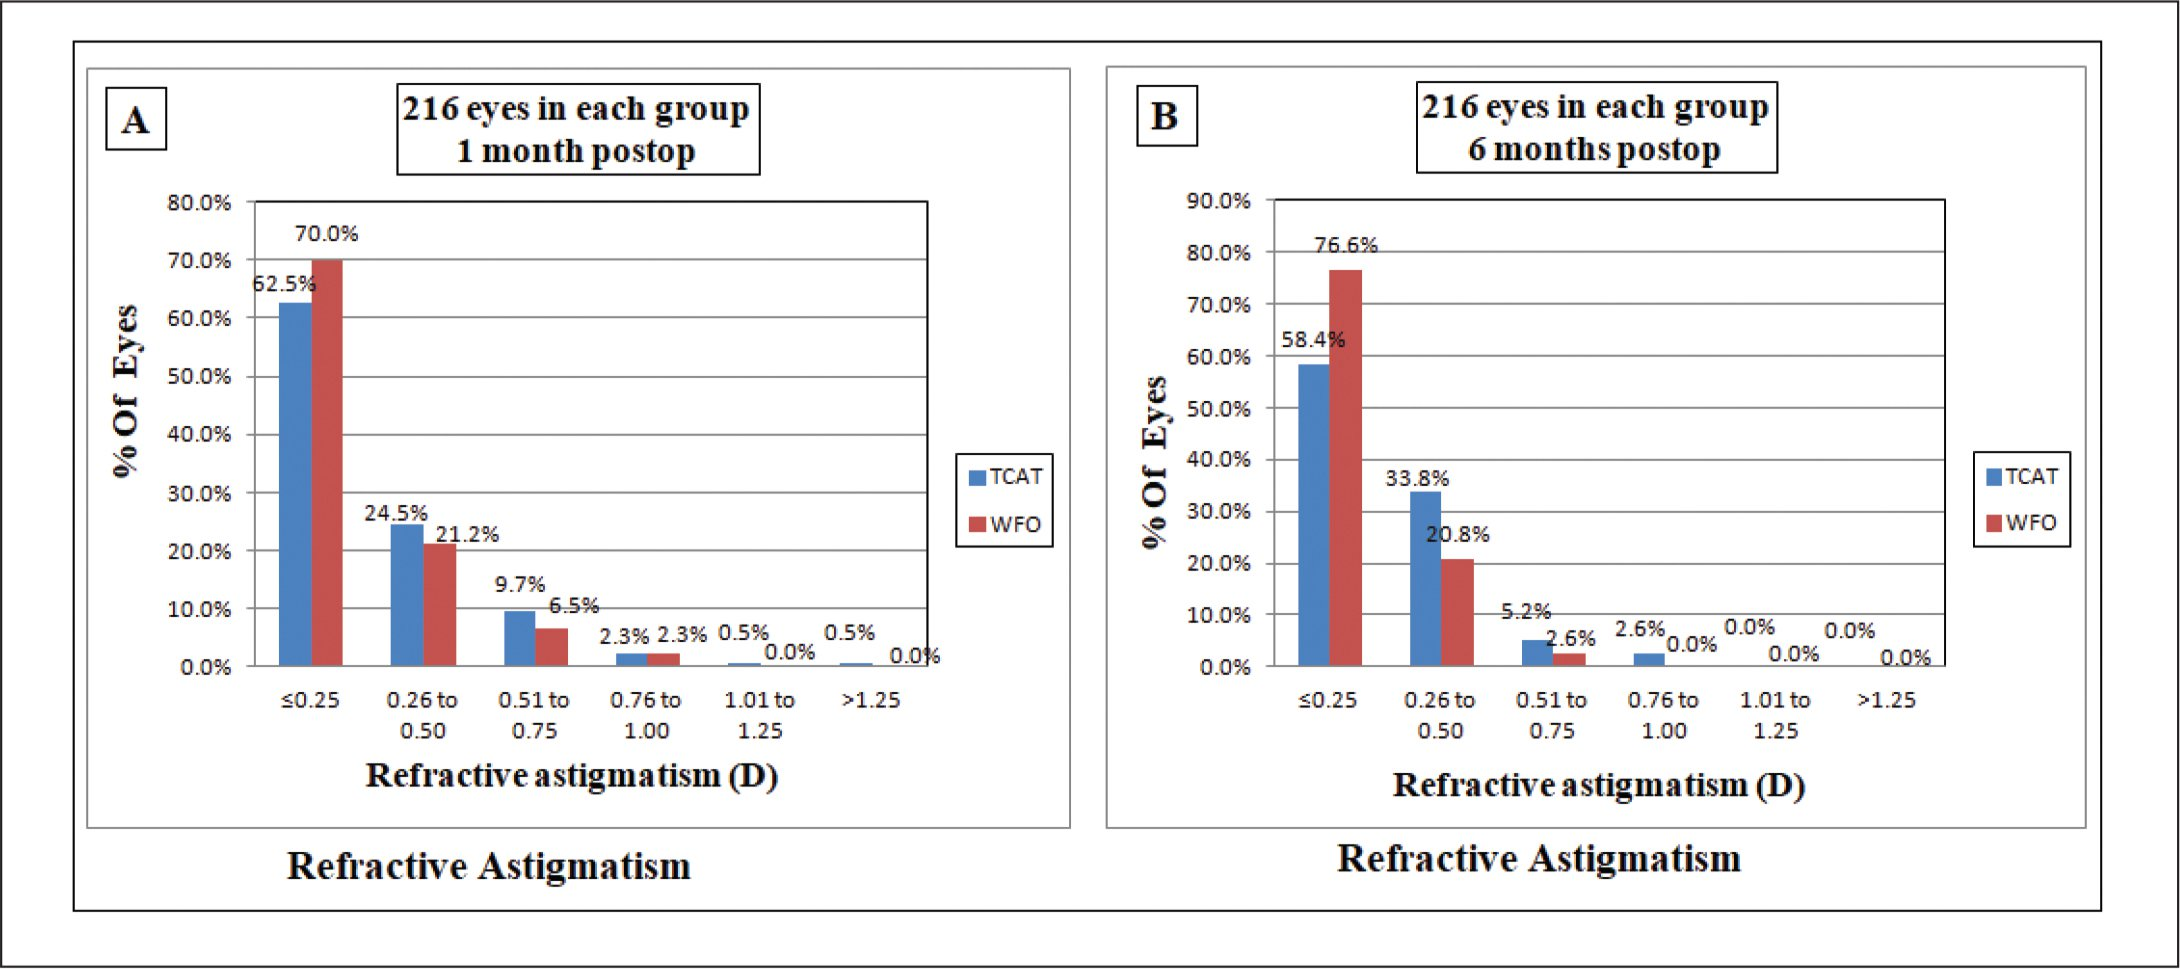 Refractive astigmatism accuracy (A) 1 month and (B) 6 months after surgery in the topography-guided customized ablation treatment (TCAT) group and wavefront-optimized (WFO) ablation group. D = diopters